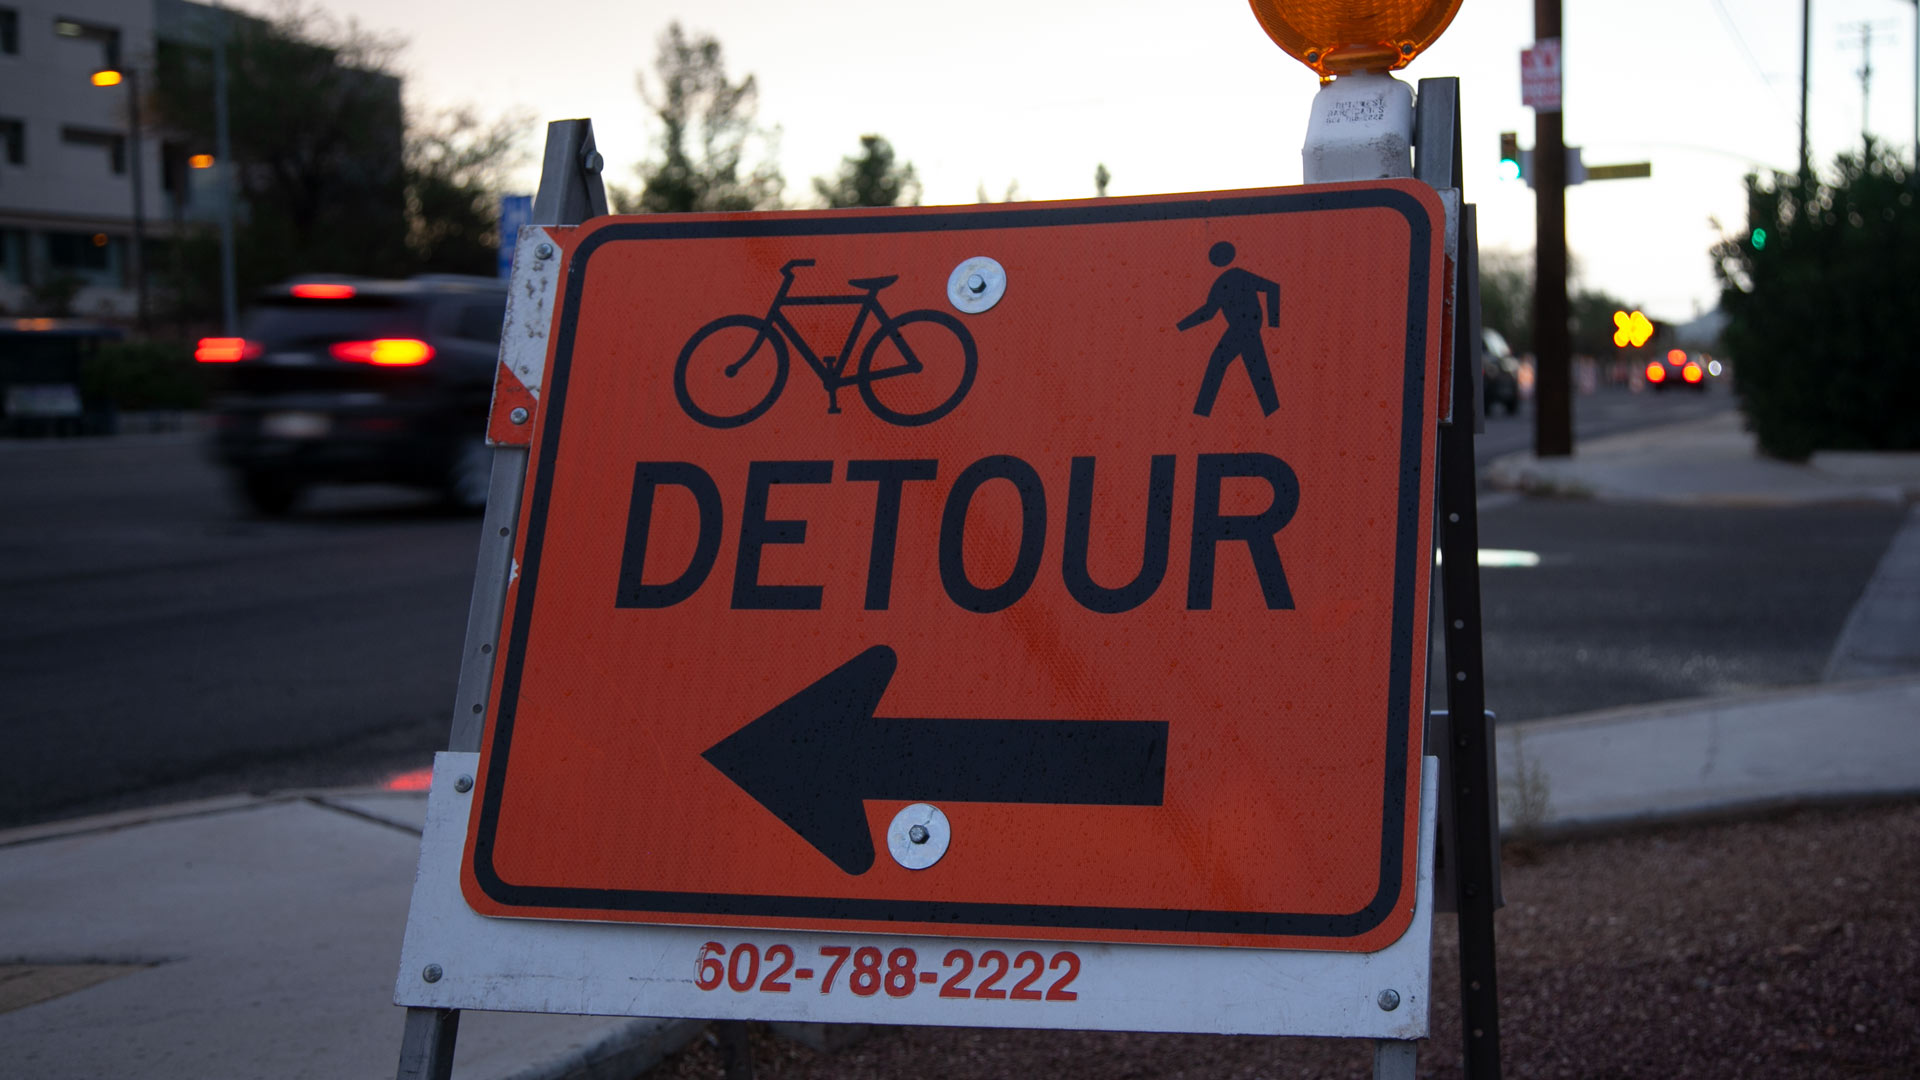 A sign indicates a detour for pedestrians and cyclists to bypass construction on Elm Street, near Campbell Avenue. From August, 2018.